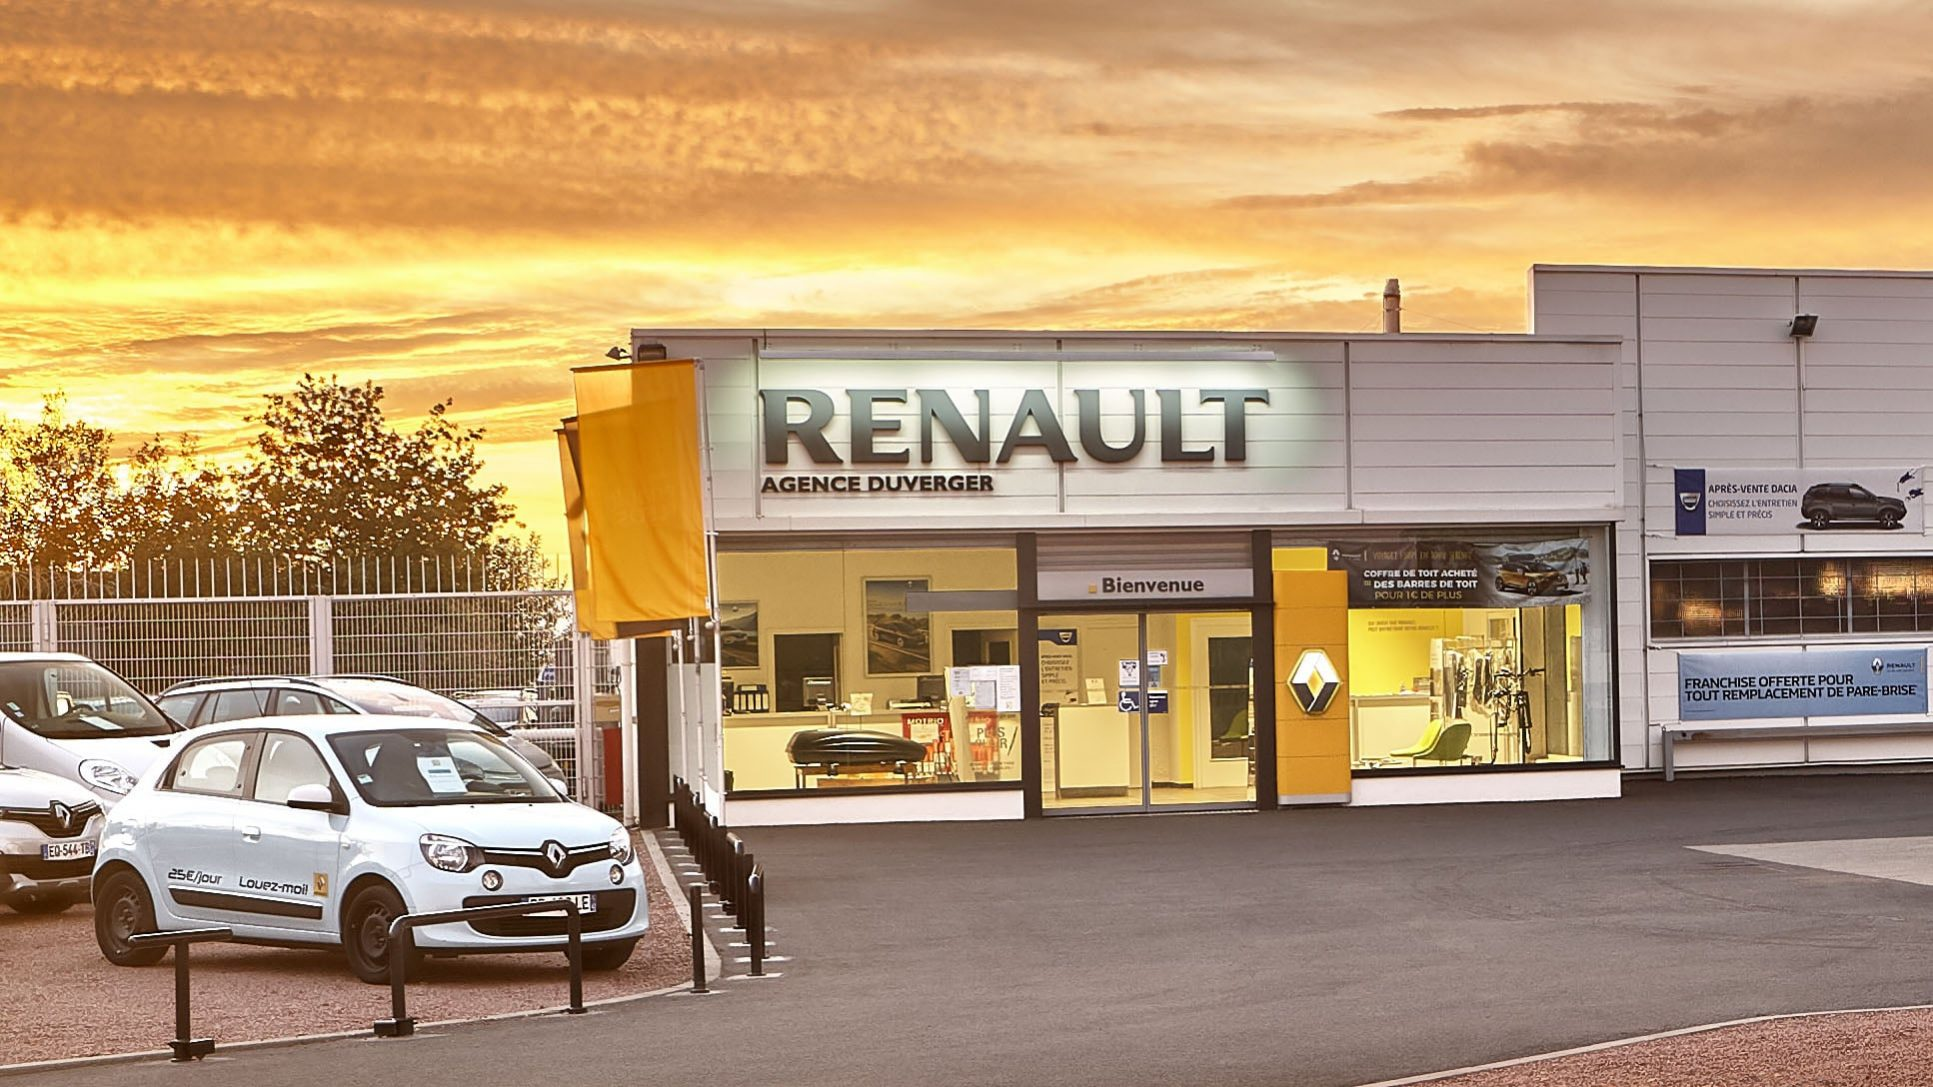 Garage Renault Duverger